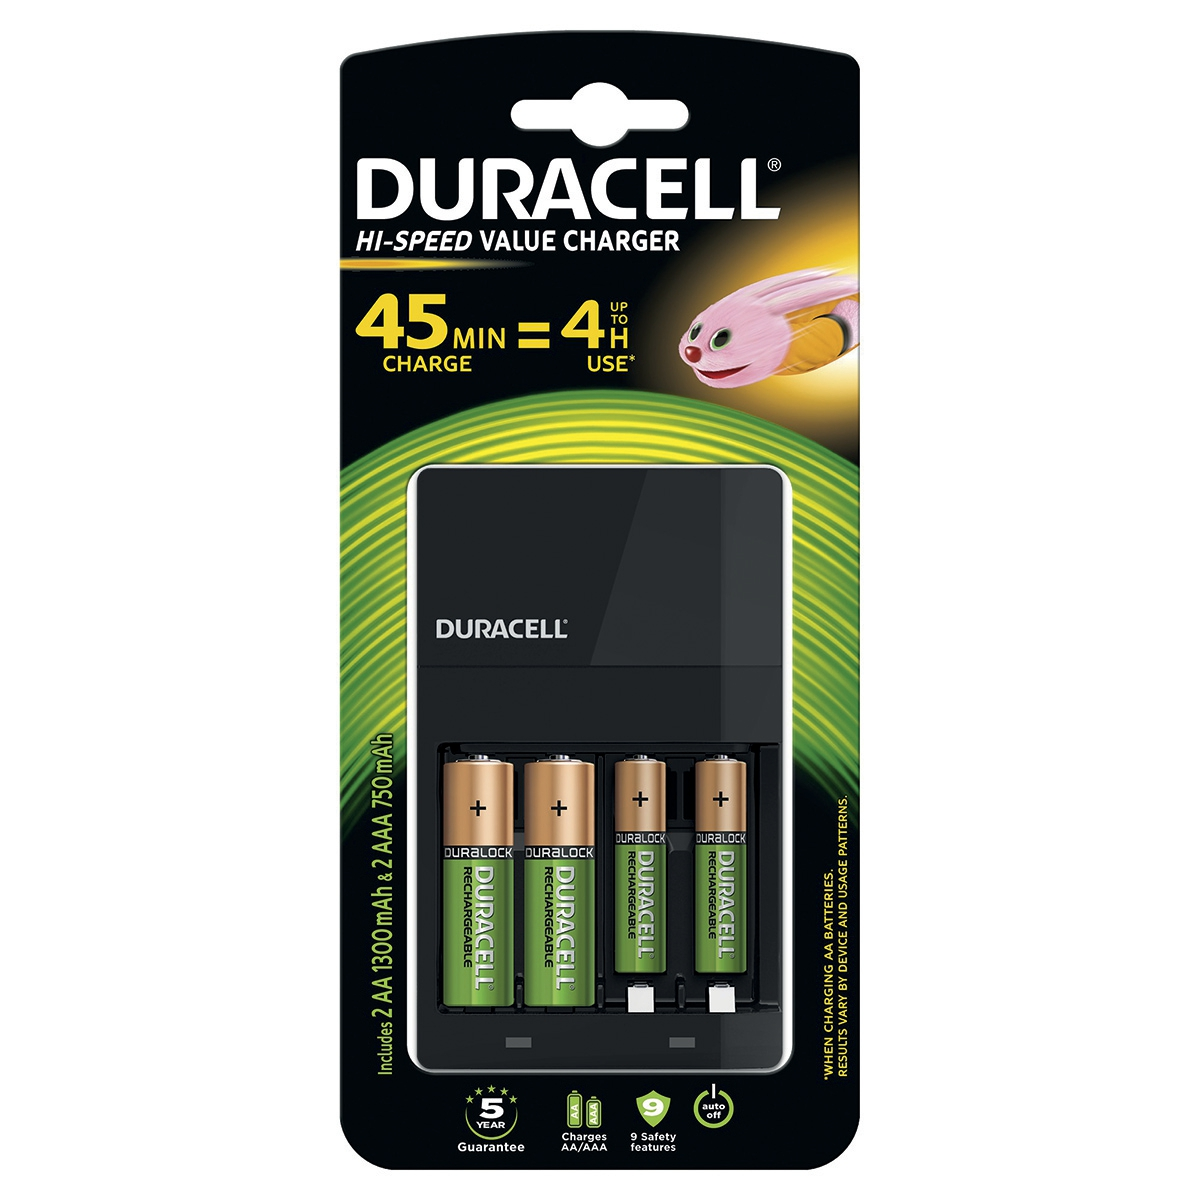 Image for Duracell 45 Minute Battery Charger Hi Speed for NiMH AA/AAA LED Charge Status Indicator Ref 81528873